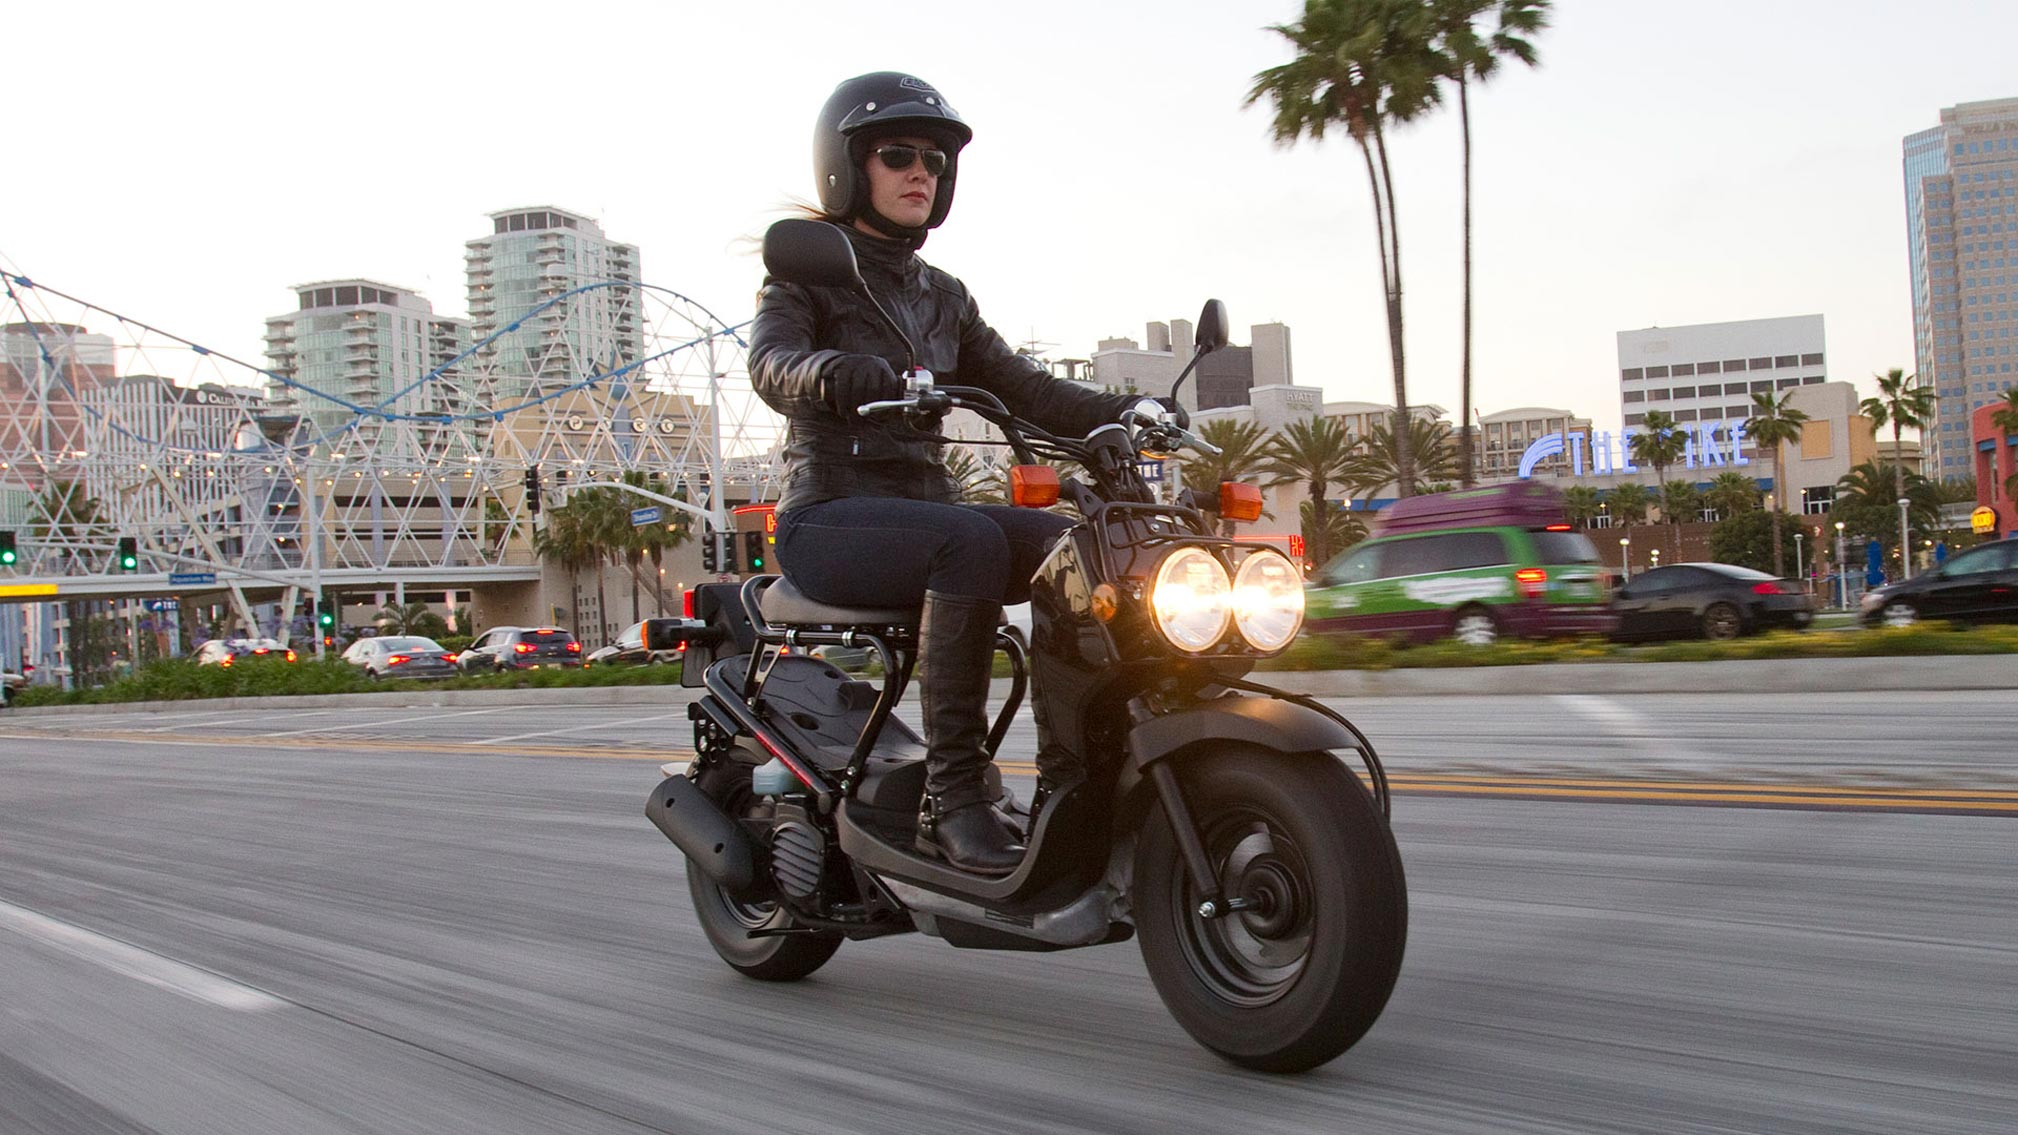 2018 Honda Ruckus Review • Total Motorcycle